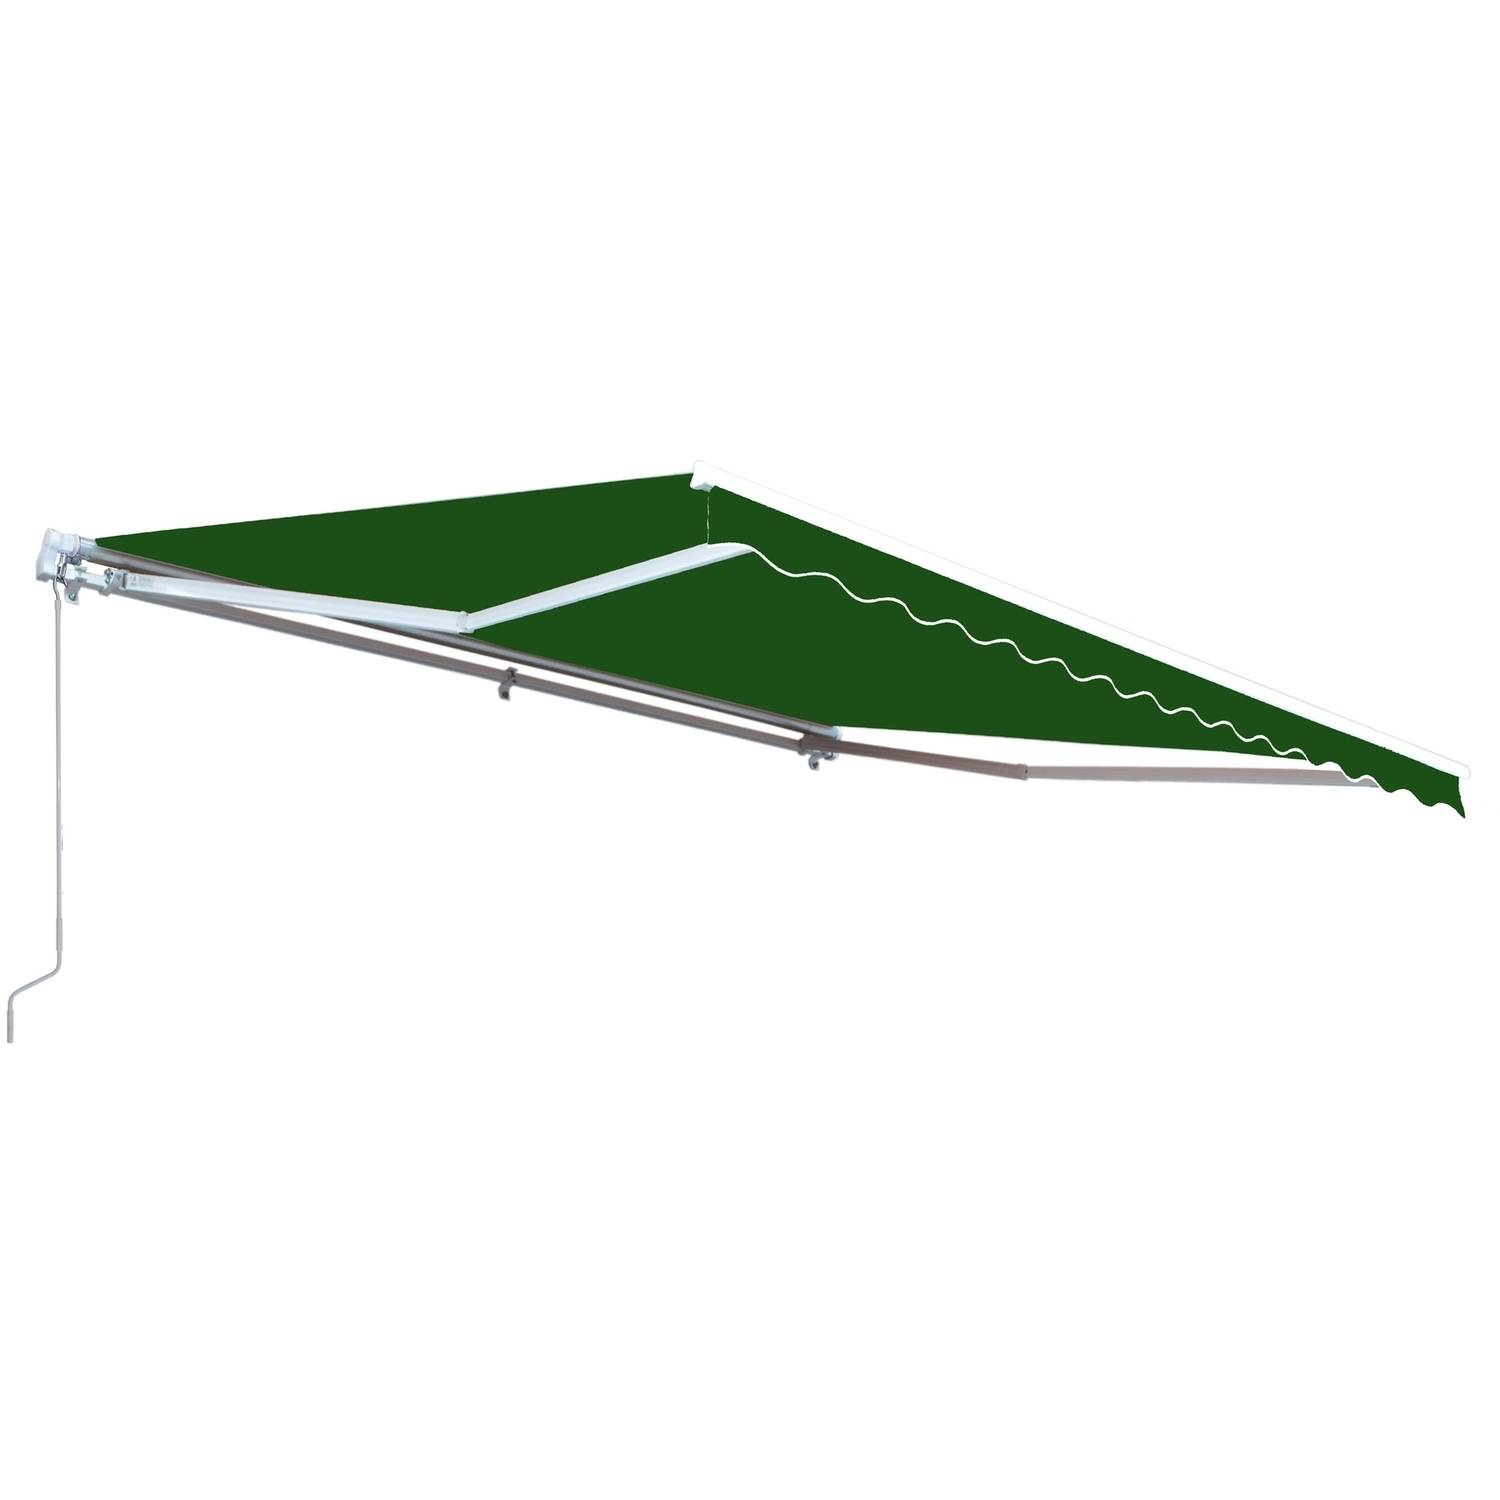 ALEKO Retractable 12' x 10' (3.65m x 3m) Patio Awning, Solid Green Color